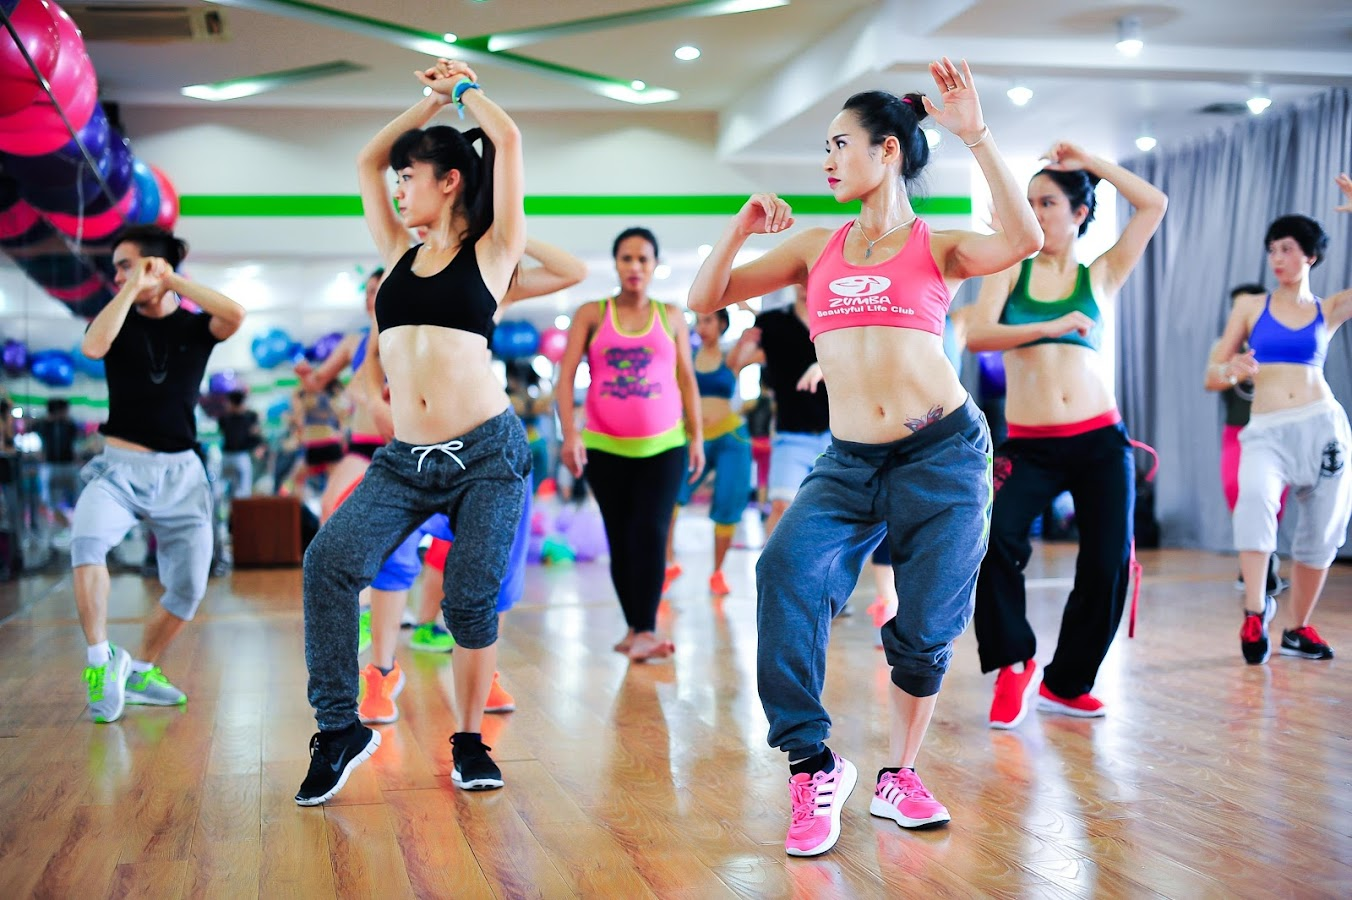 Zumba Dance Workout Routines - Android Apps on Google Play